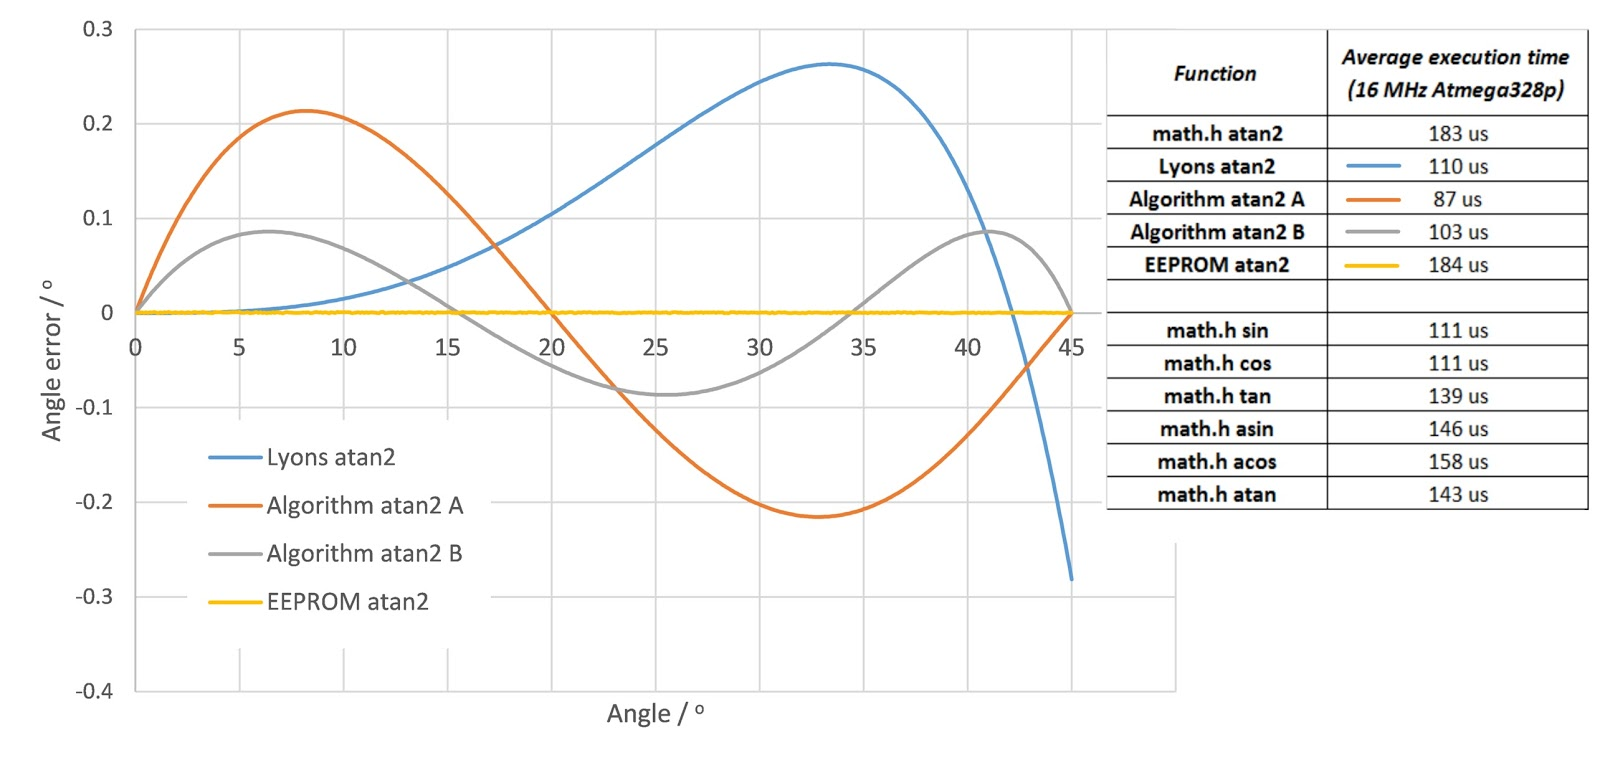 Trigonometric function table -  Algorithm A Algorithm B Eeprom Lookup Table Arctan2 Implementation The Y Axis Shows The Deviation Of Each Function From Excel S Atan2 Function